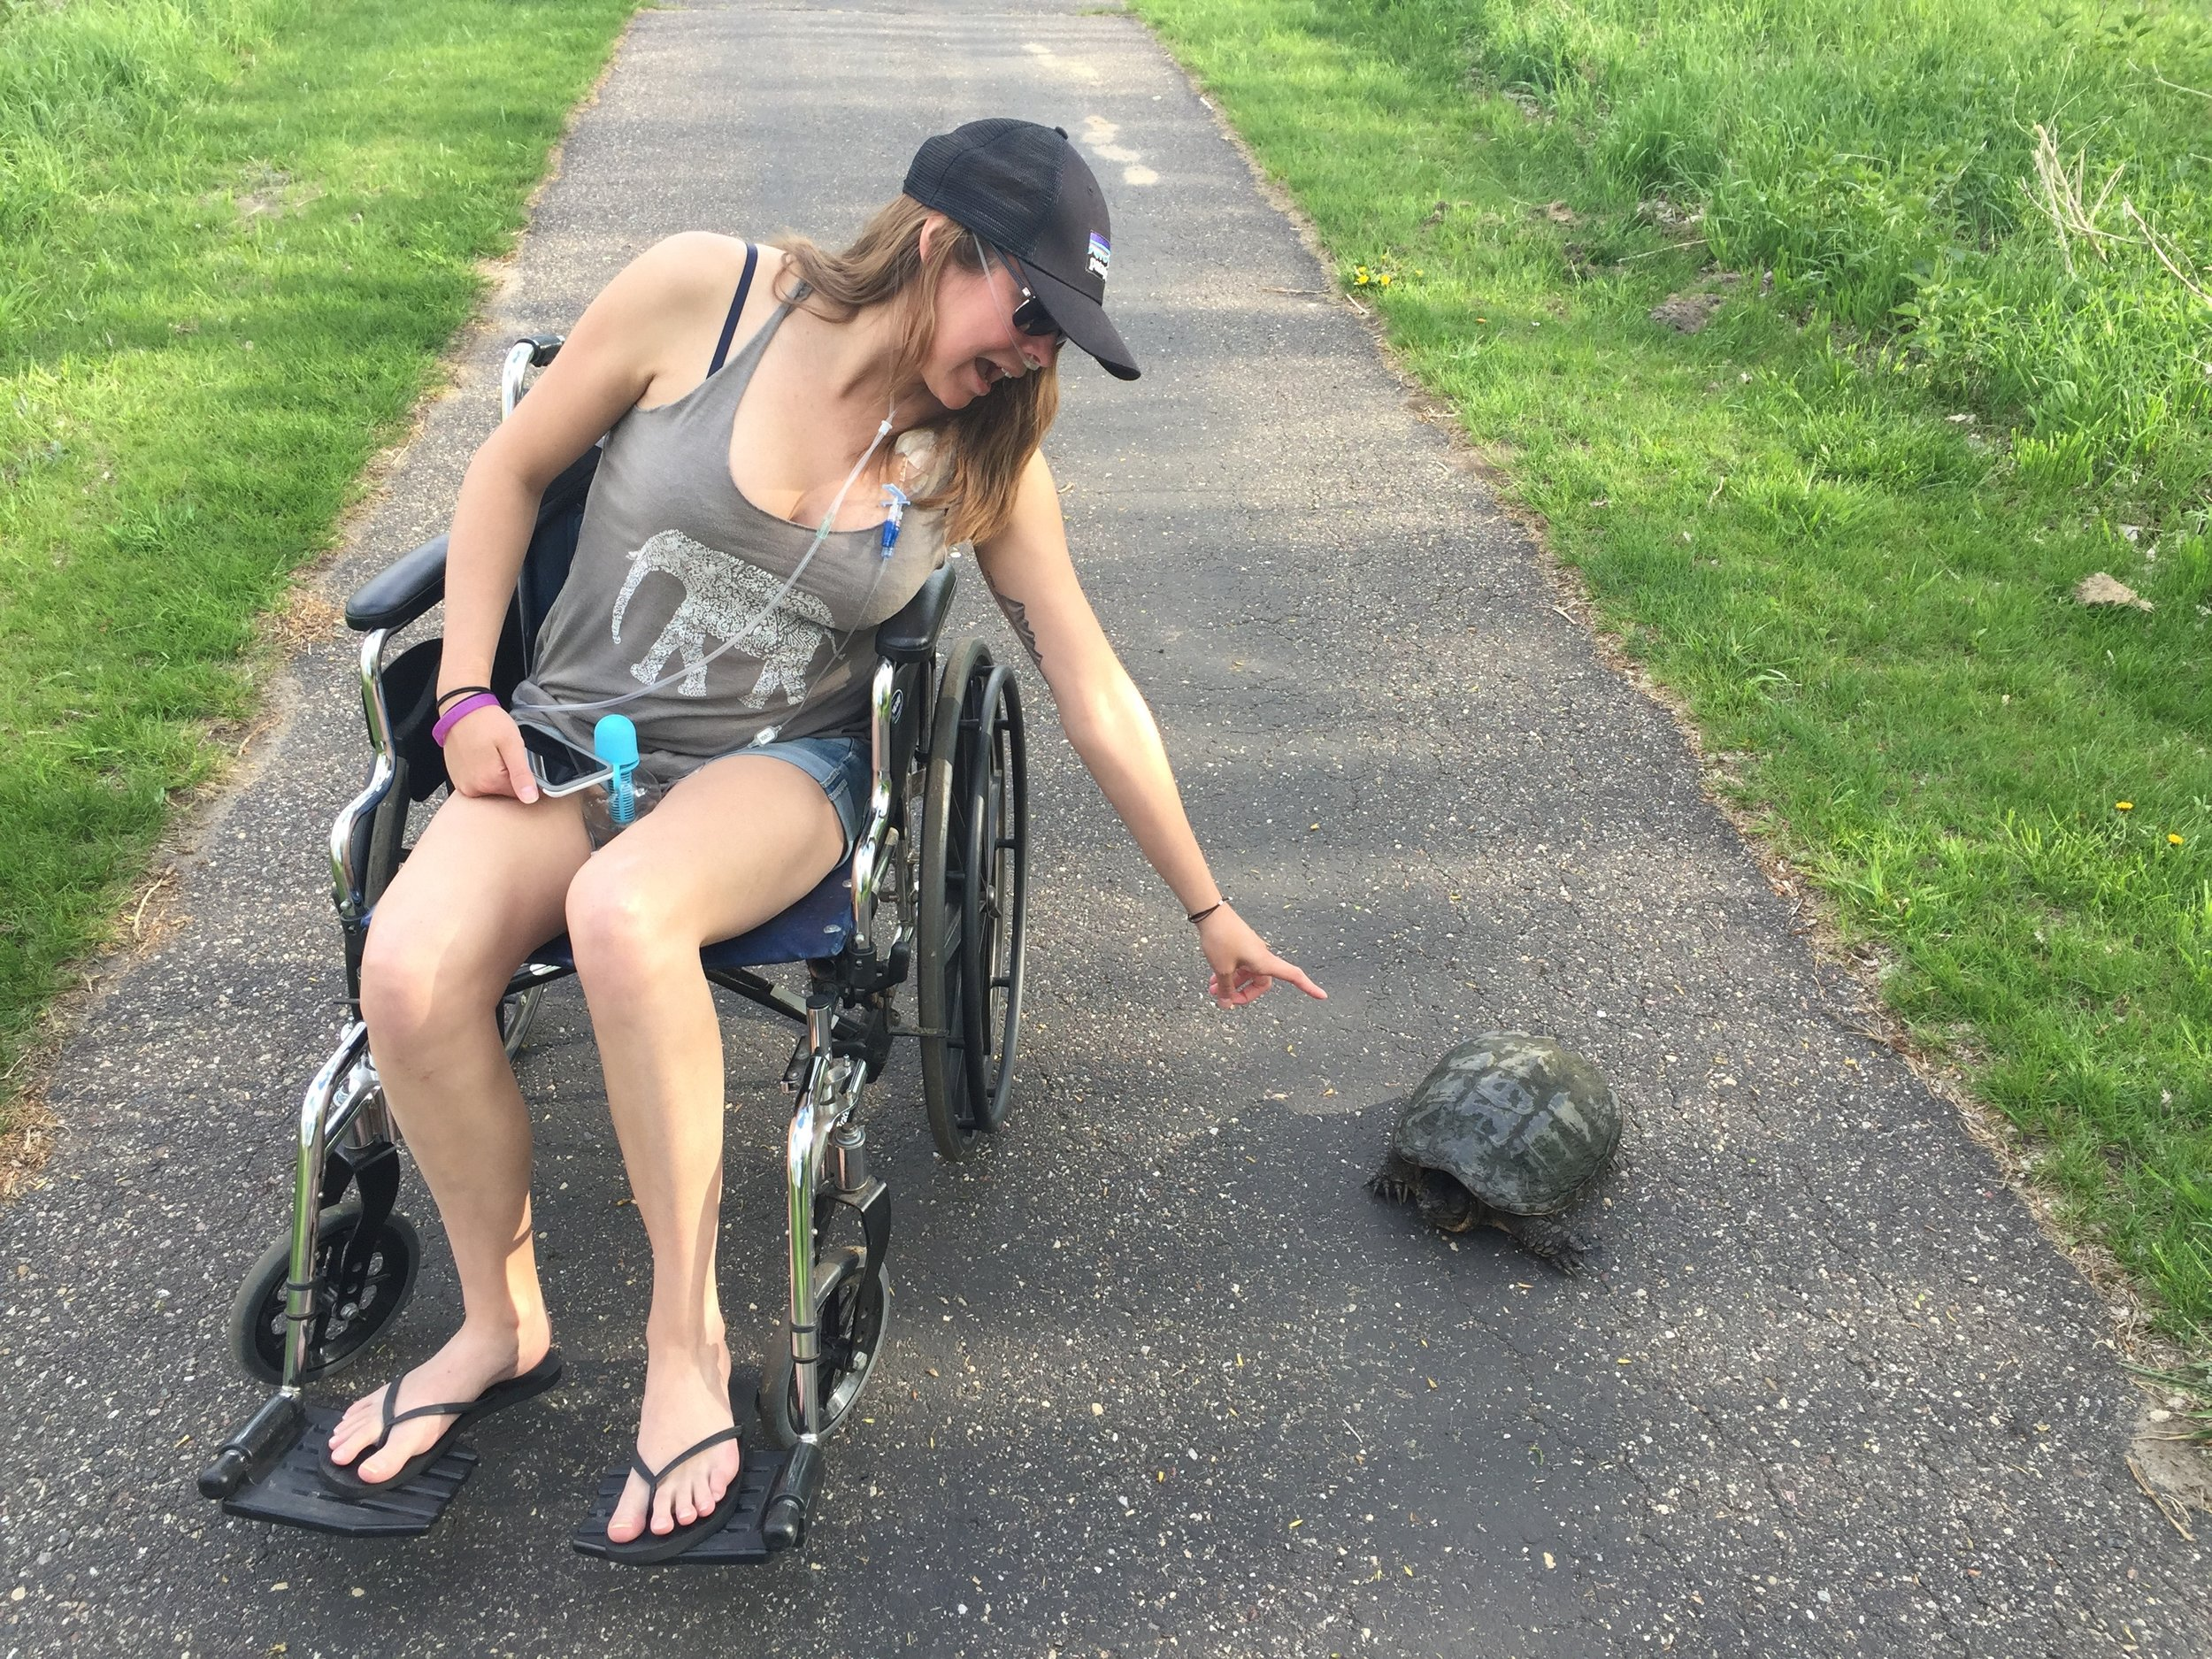 We ran into a turtle on our roll n' stroll, she tried to boop his nose.